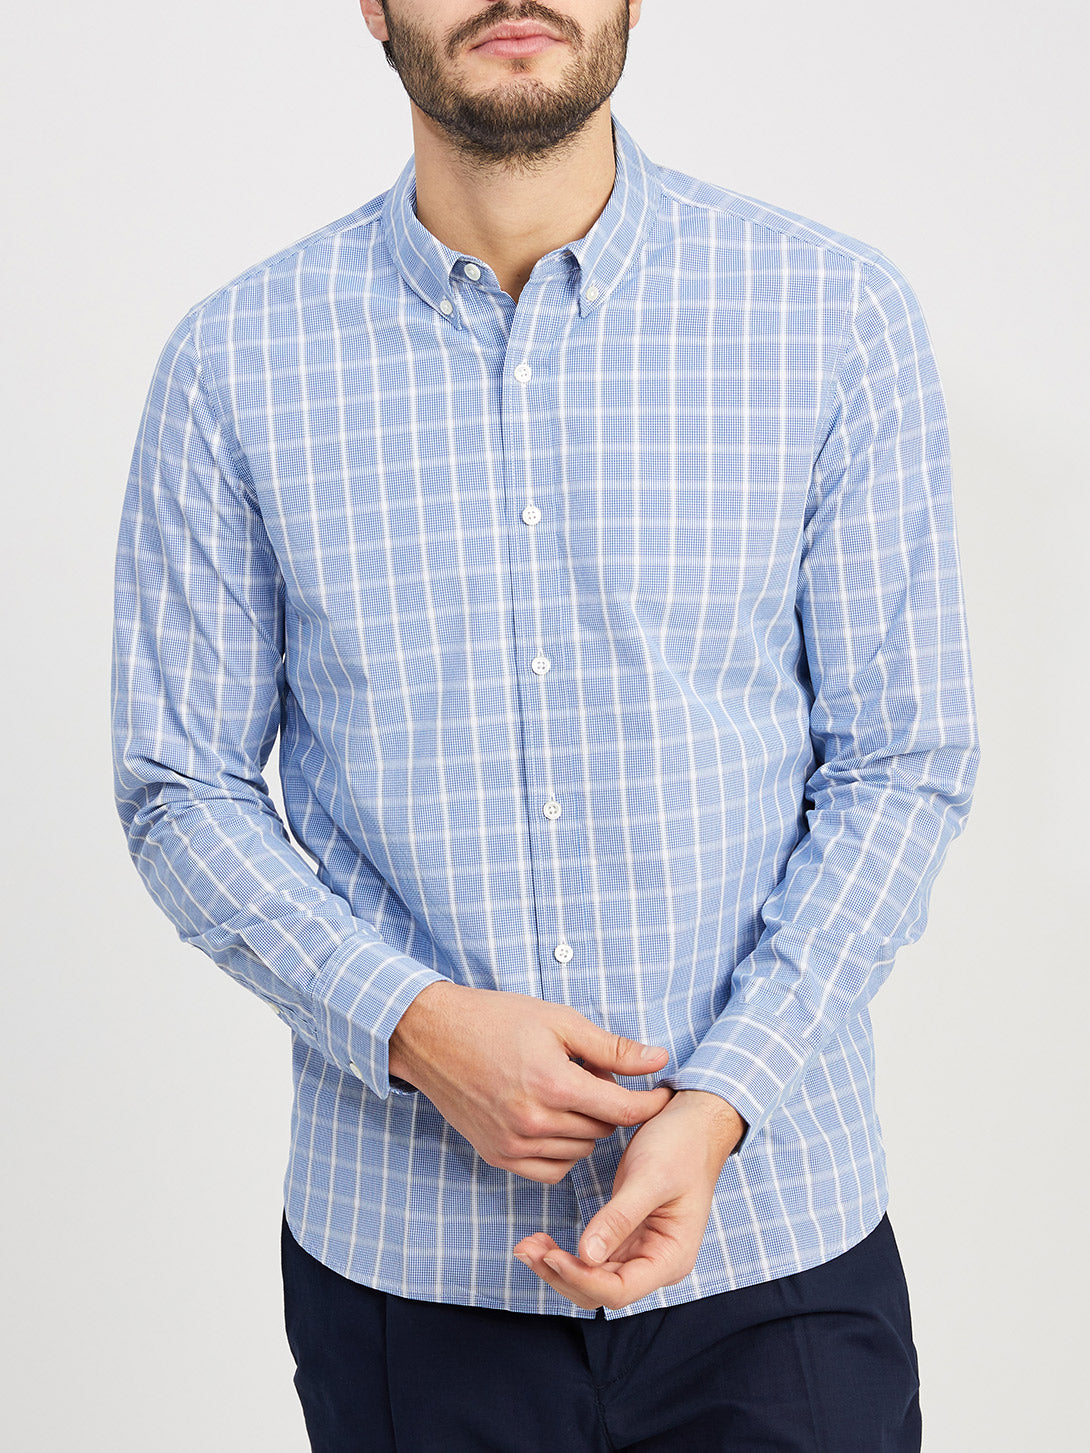 BLUE CHECK button down shirt for men fulton dobby check shirt ons clothing